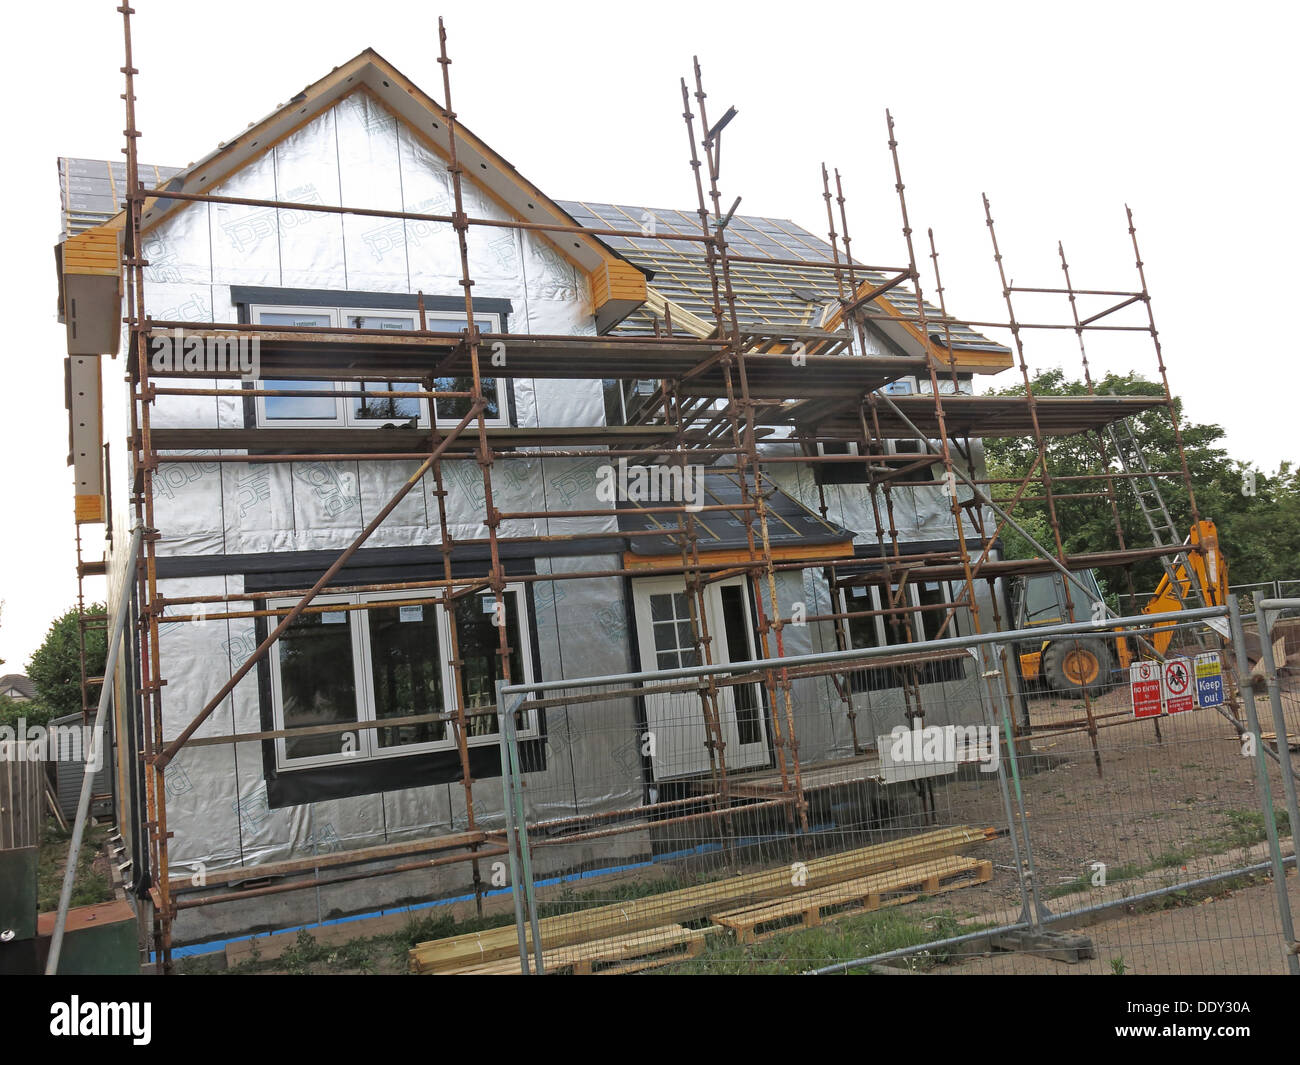 Timber Framed House under construction Eskbank Dalkeith Midlothian Scotland UK showing silver reflective foil - Stock Image